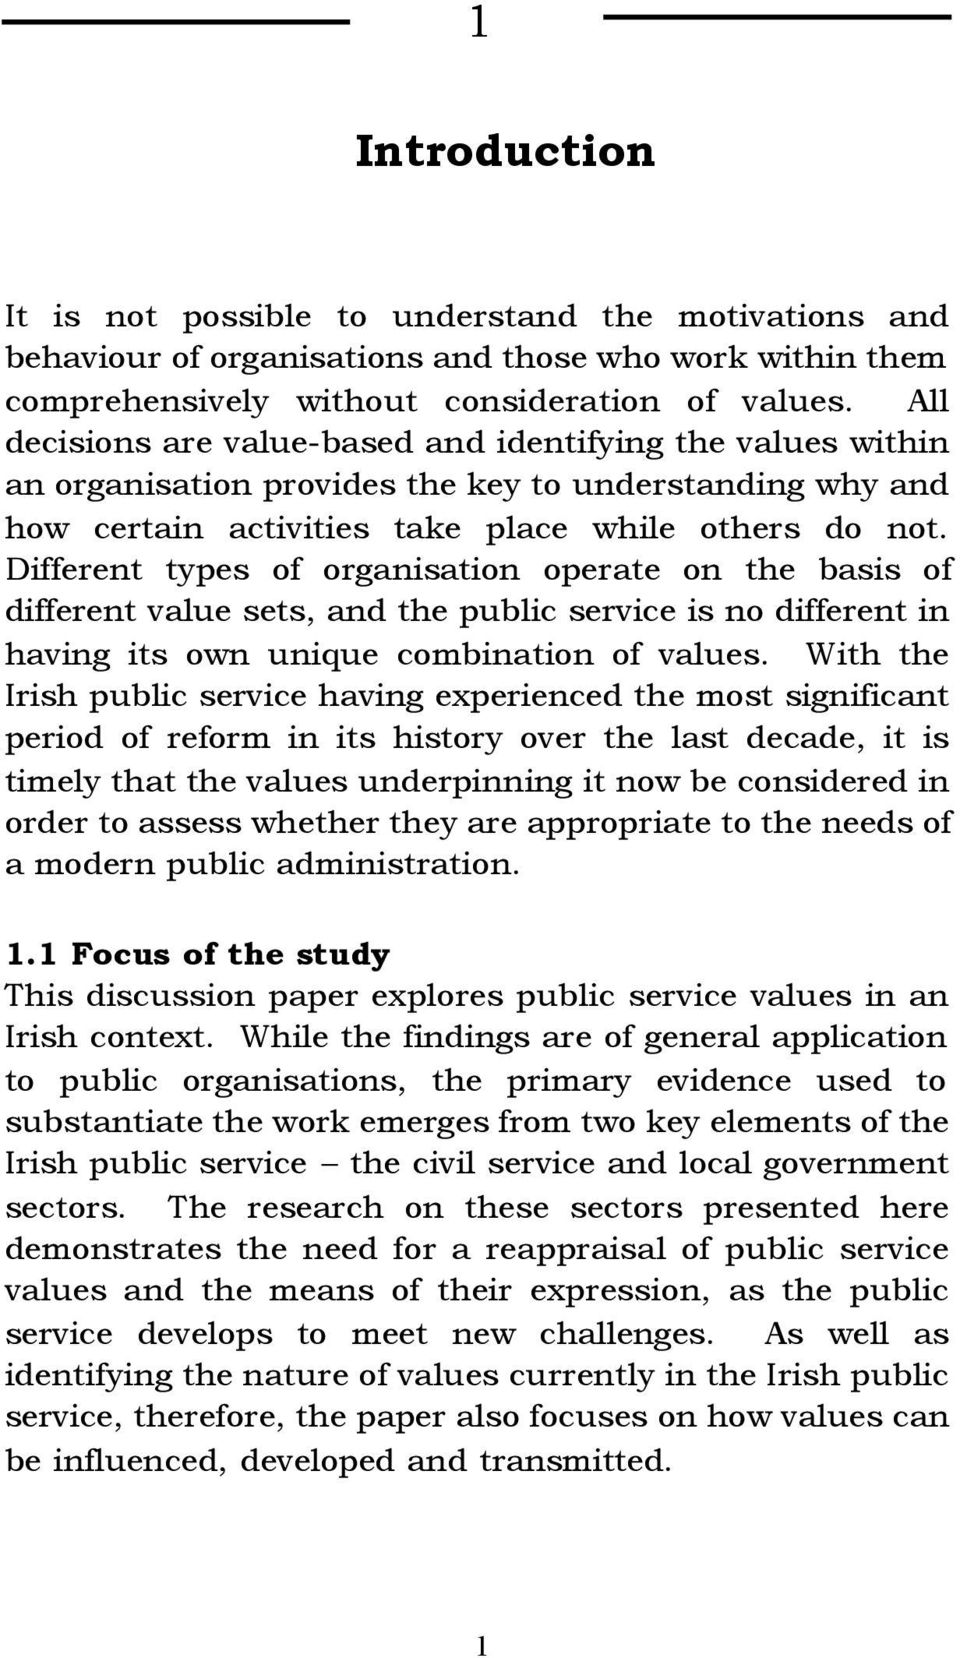 Different types of organisation operate on the basis of different value sets, and the public service is no different in having its own unique combination of values.